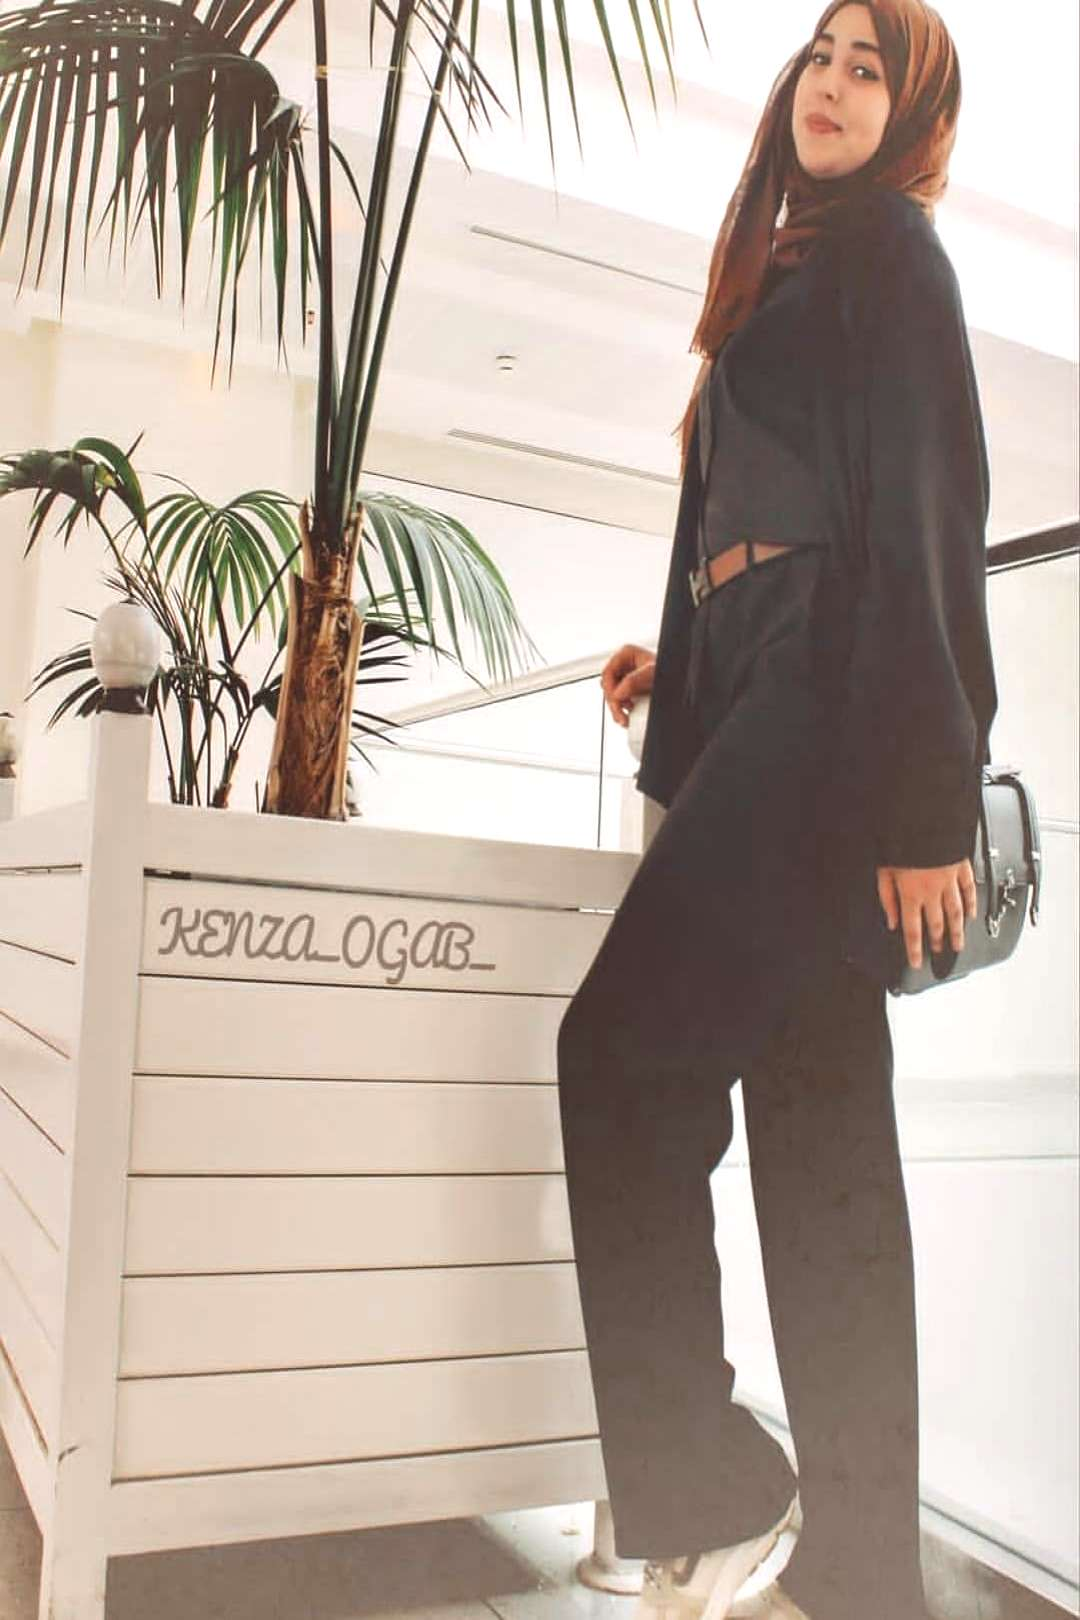 fashion page on April 23 2020 1 person standing